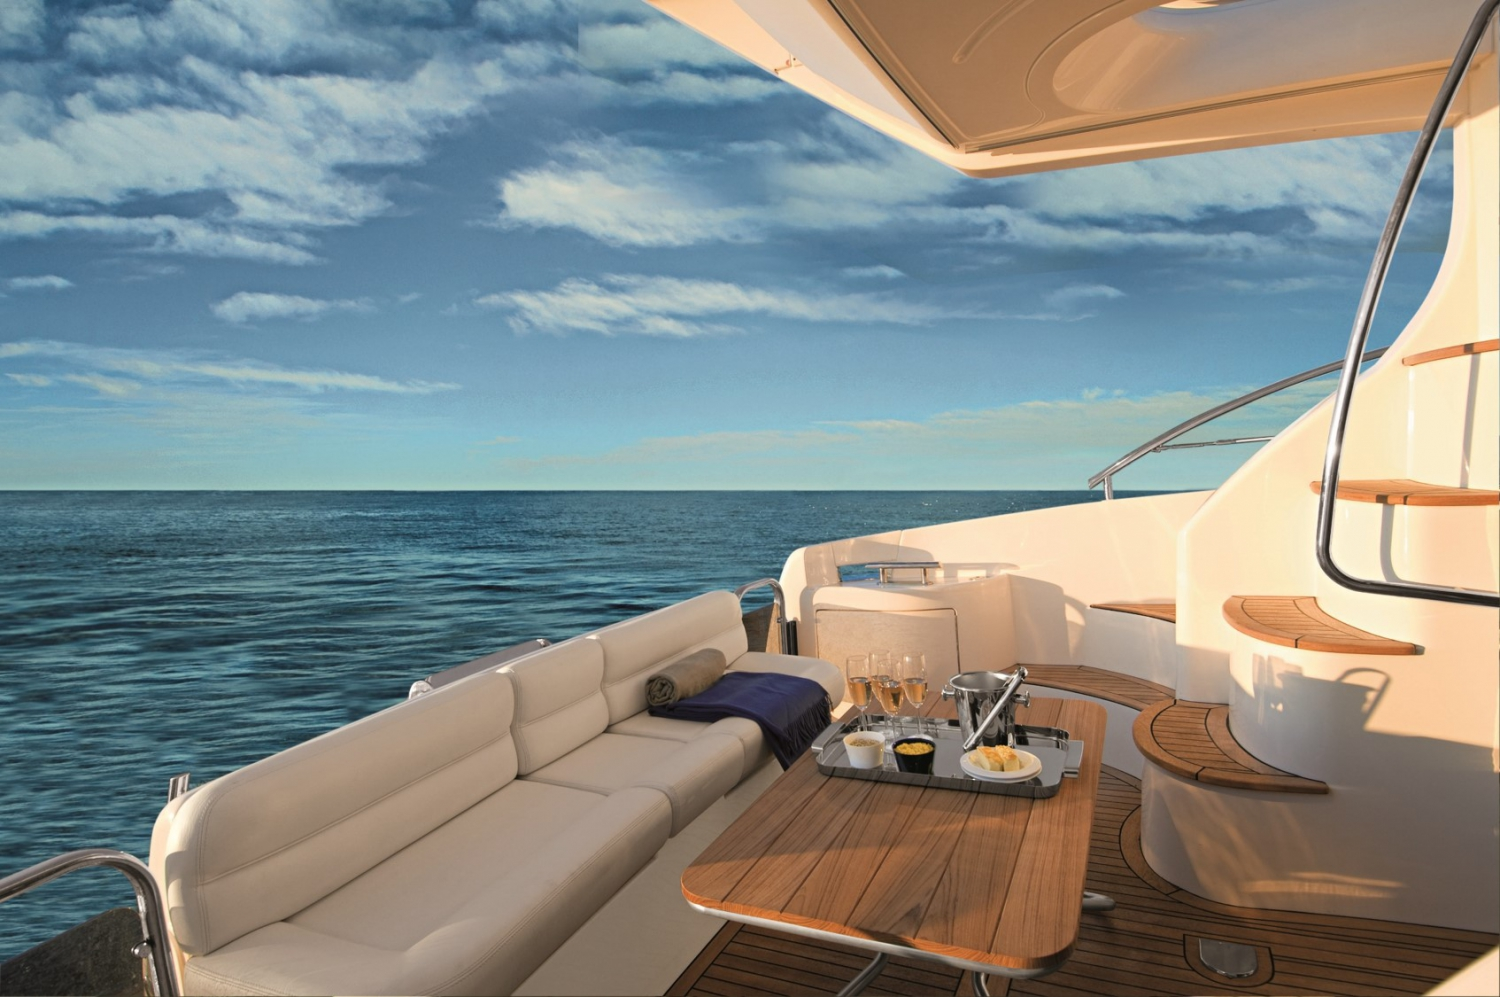 Luxury Time Charters